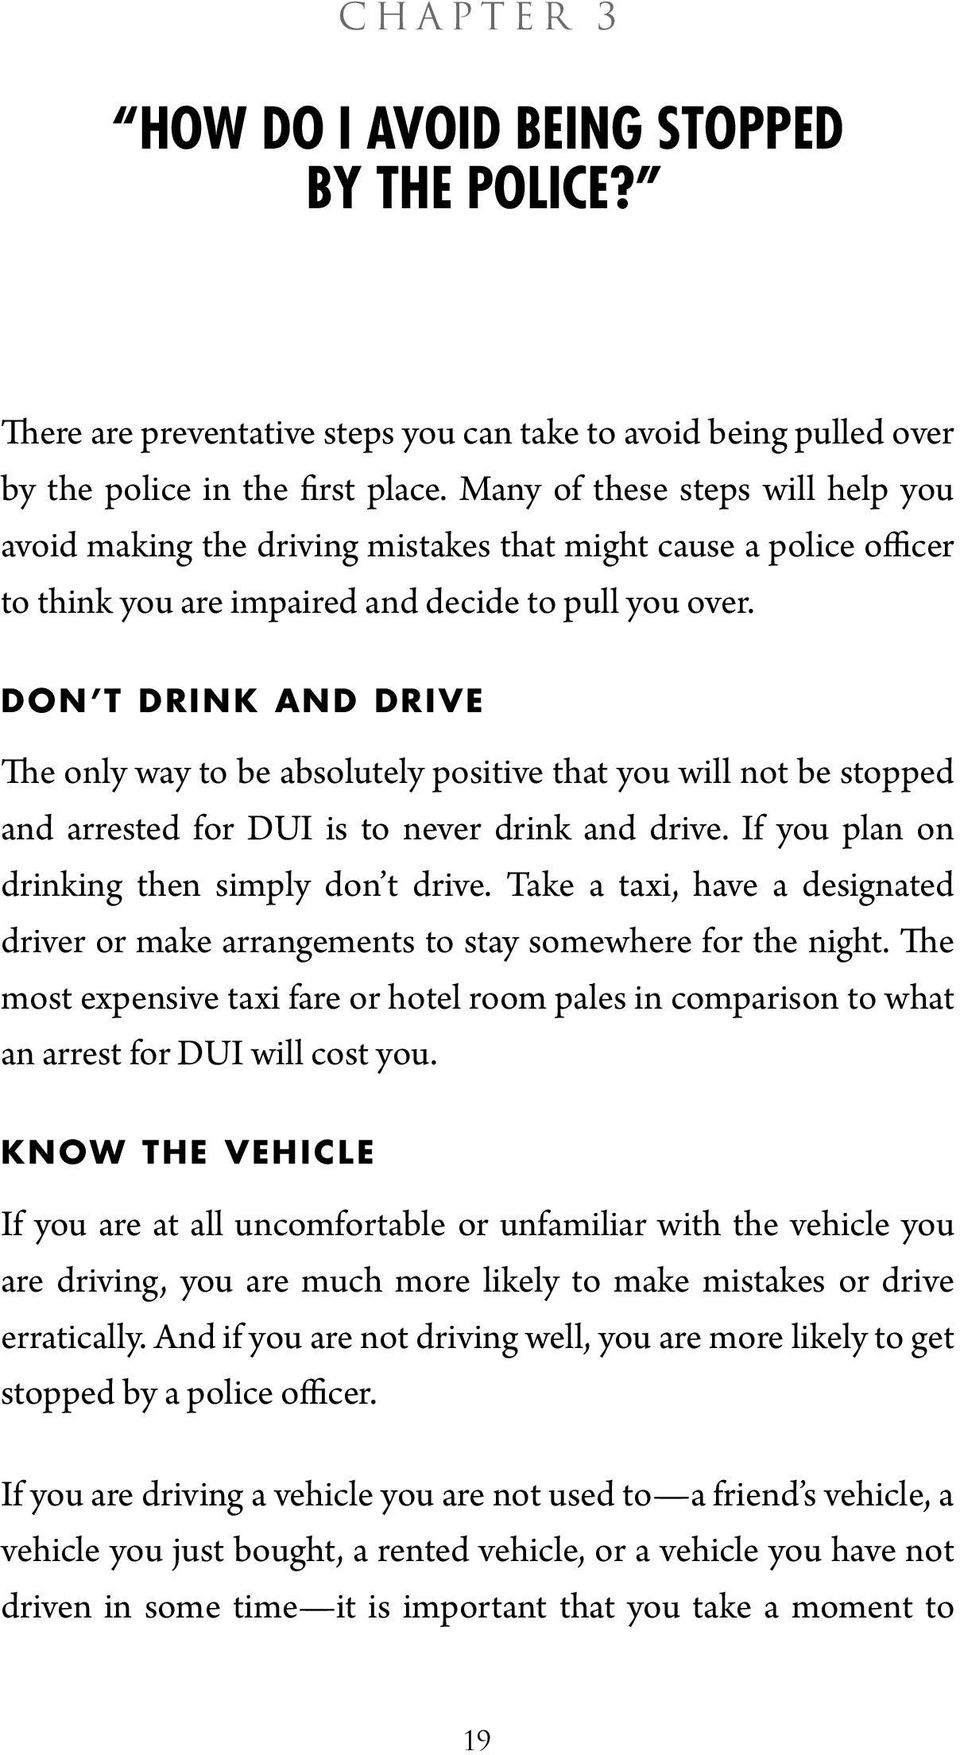 DON T DRINK AND DRIVE The only way to be absolutely positive that you will not be stopped and arrested for DUI is to never drink and drive. If you plan on drinking then simply don t drive.